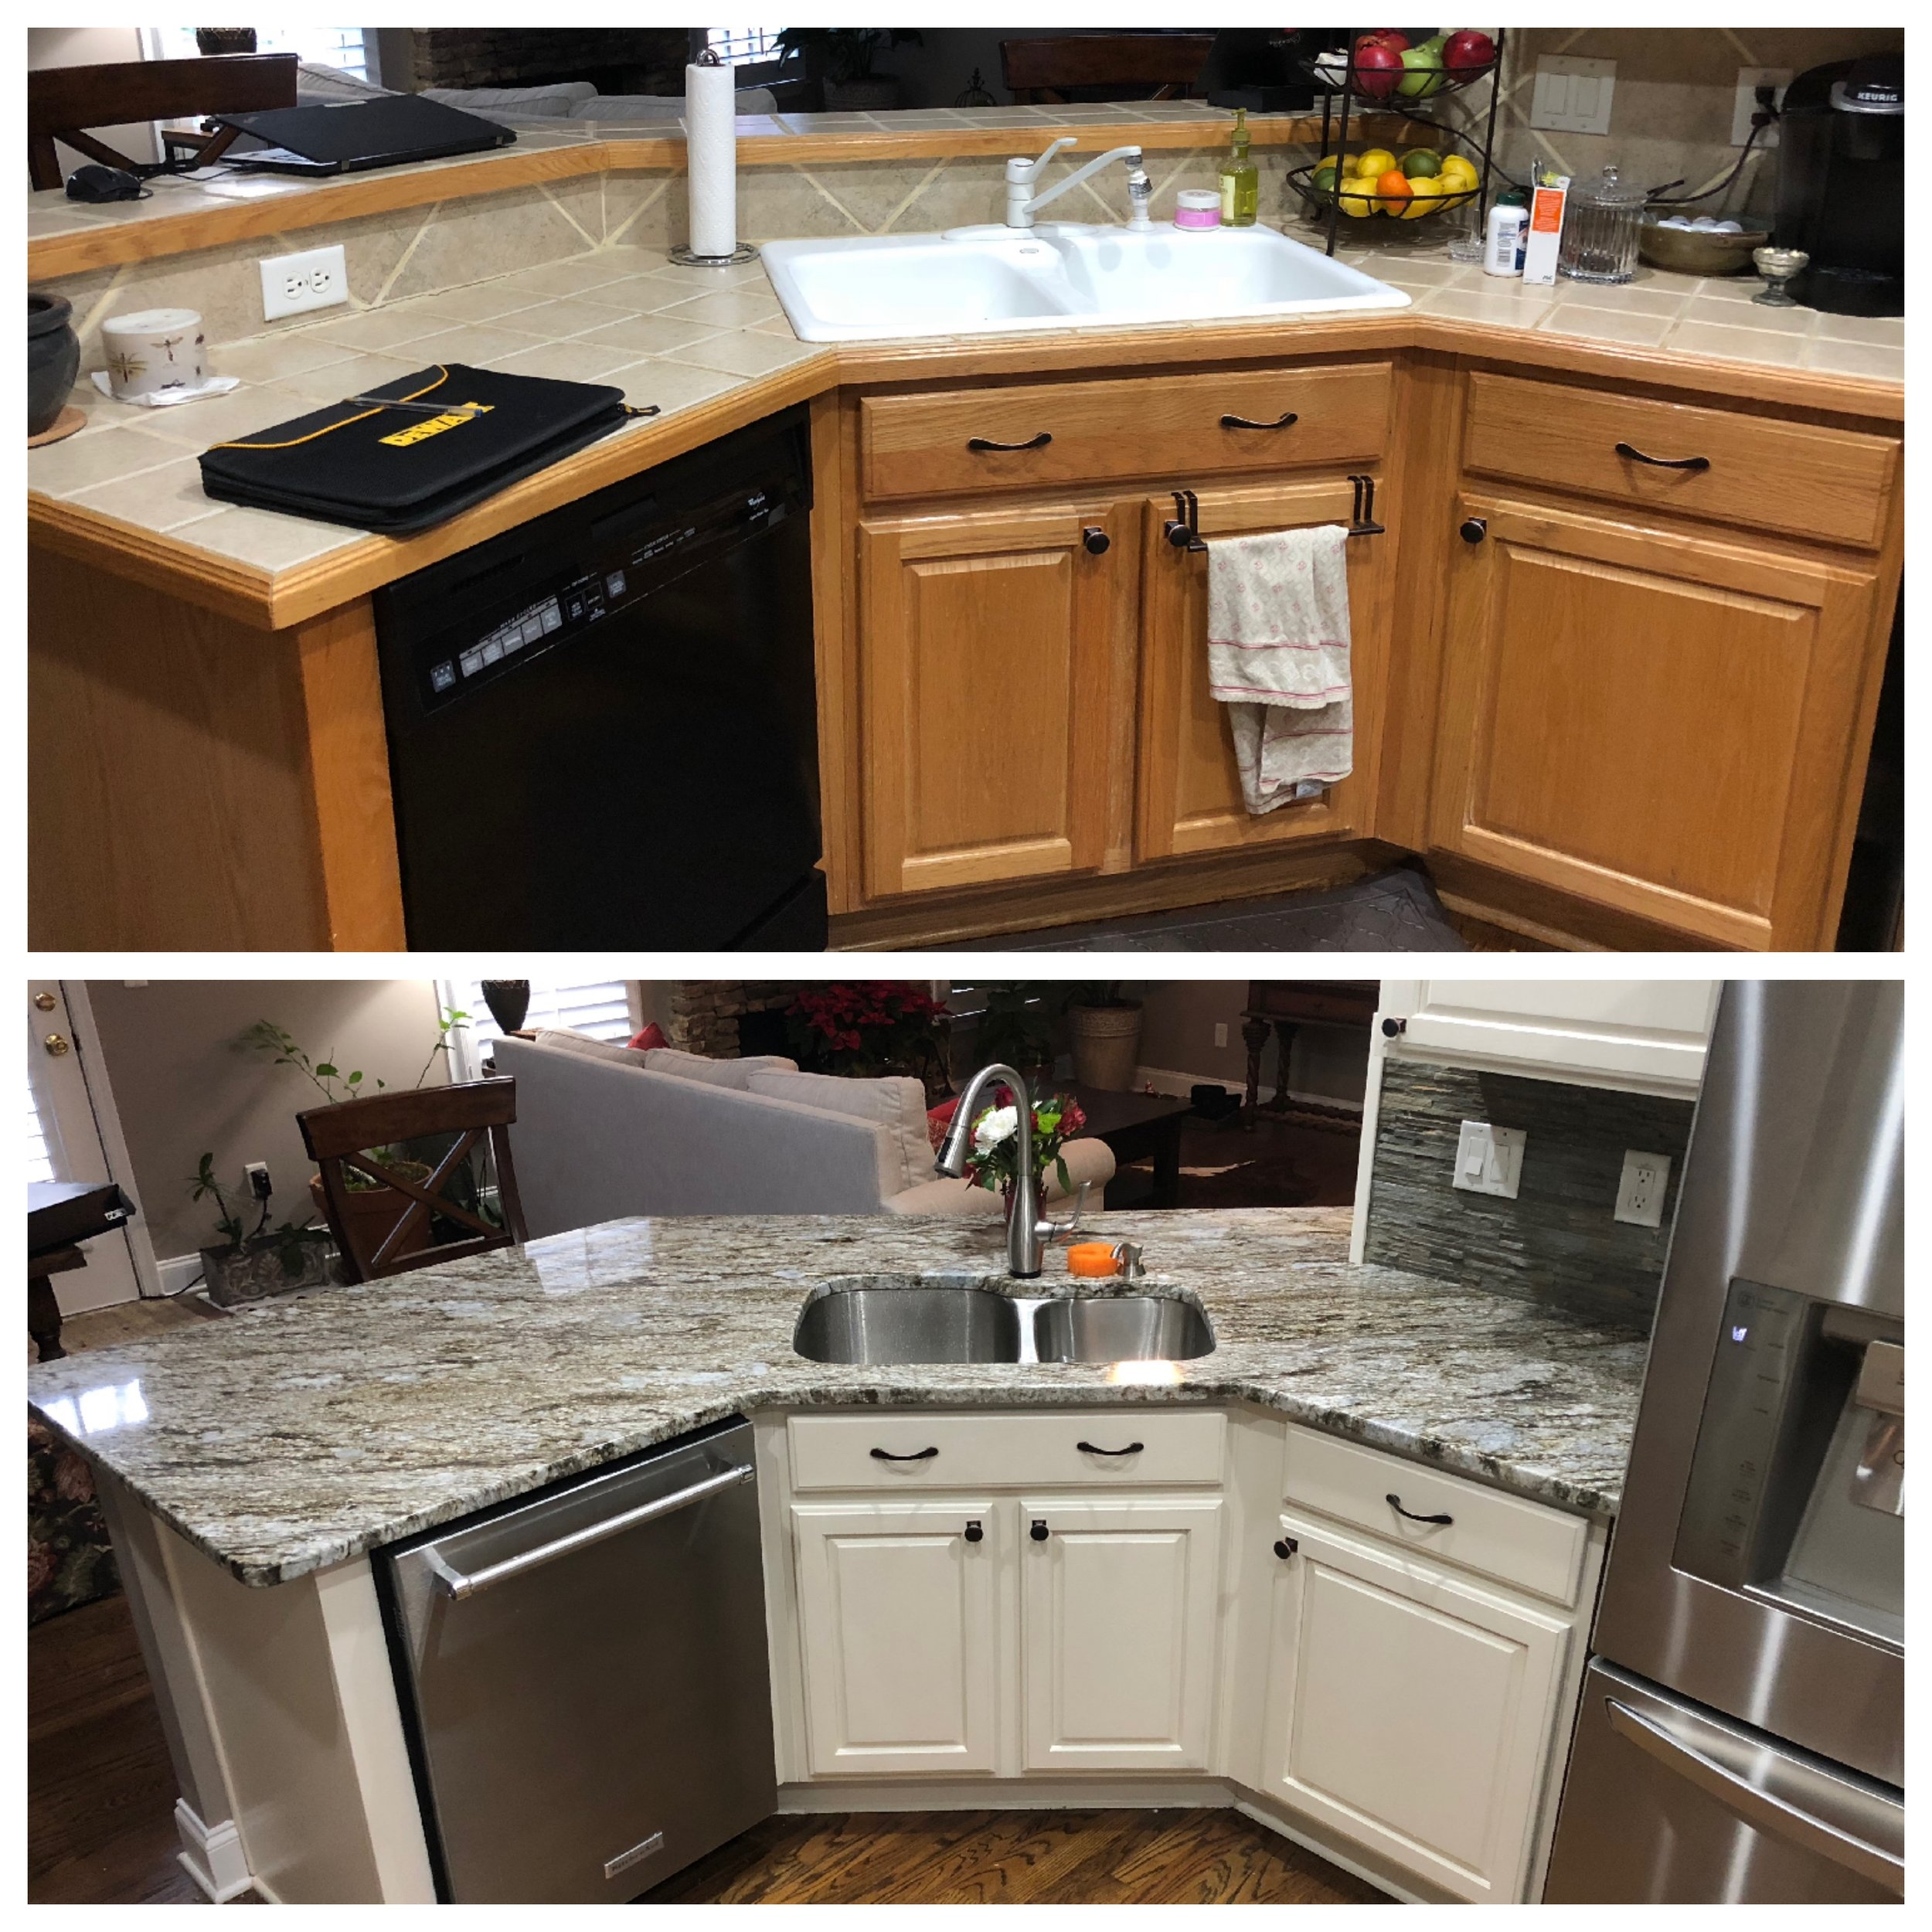 A recent kitchen renovation before & after. Cabinet repainting, new appliances, new counters, stone backsplash, new sink, etc.